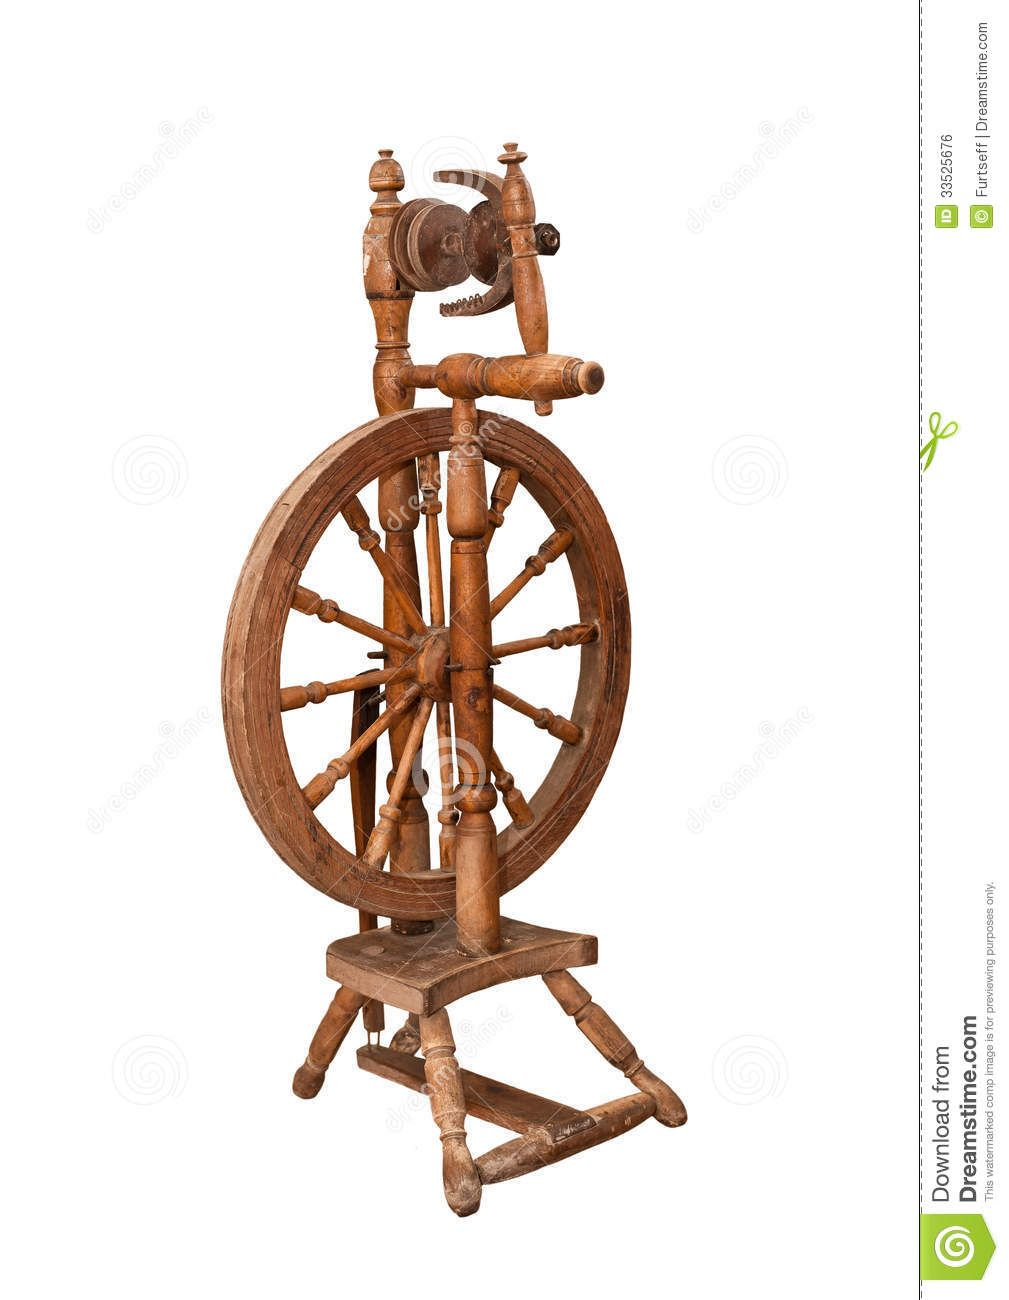 Anatomy Of A Spinning Wheel Antique Spinning Wheel Related